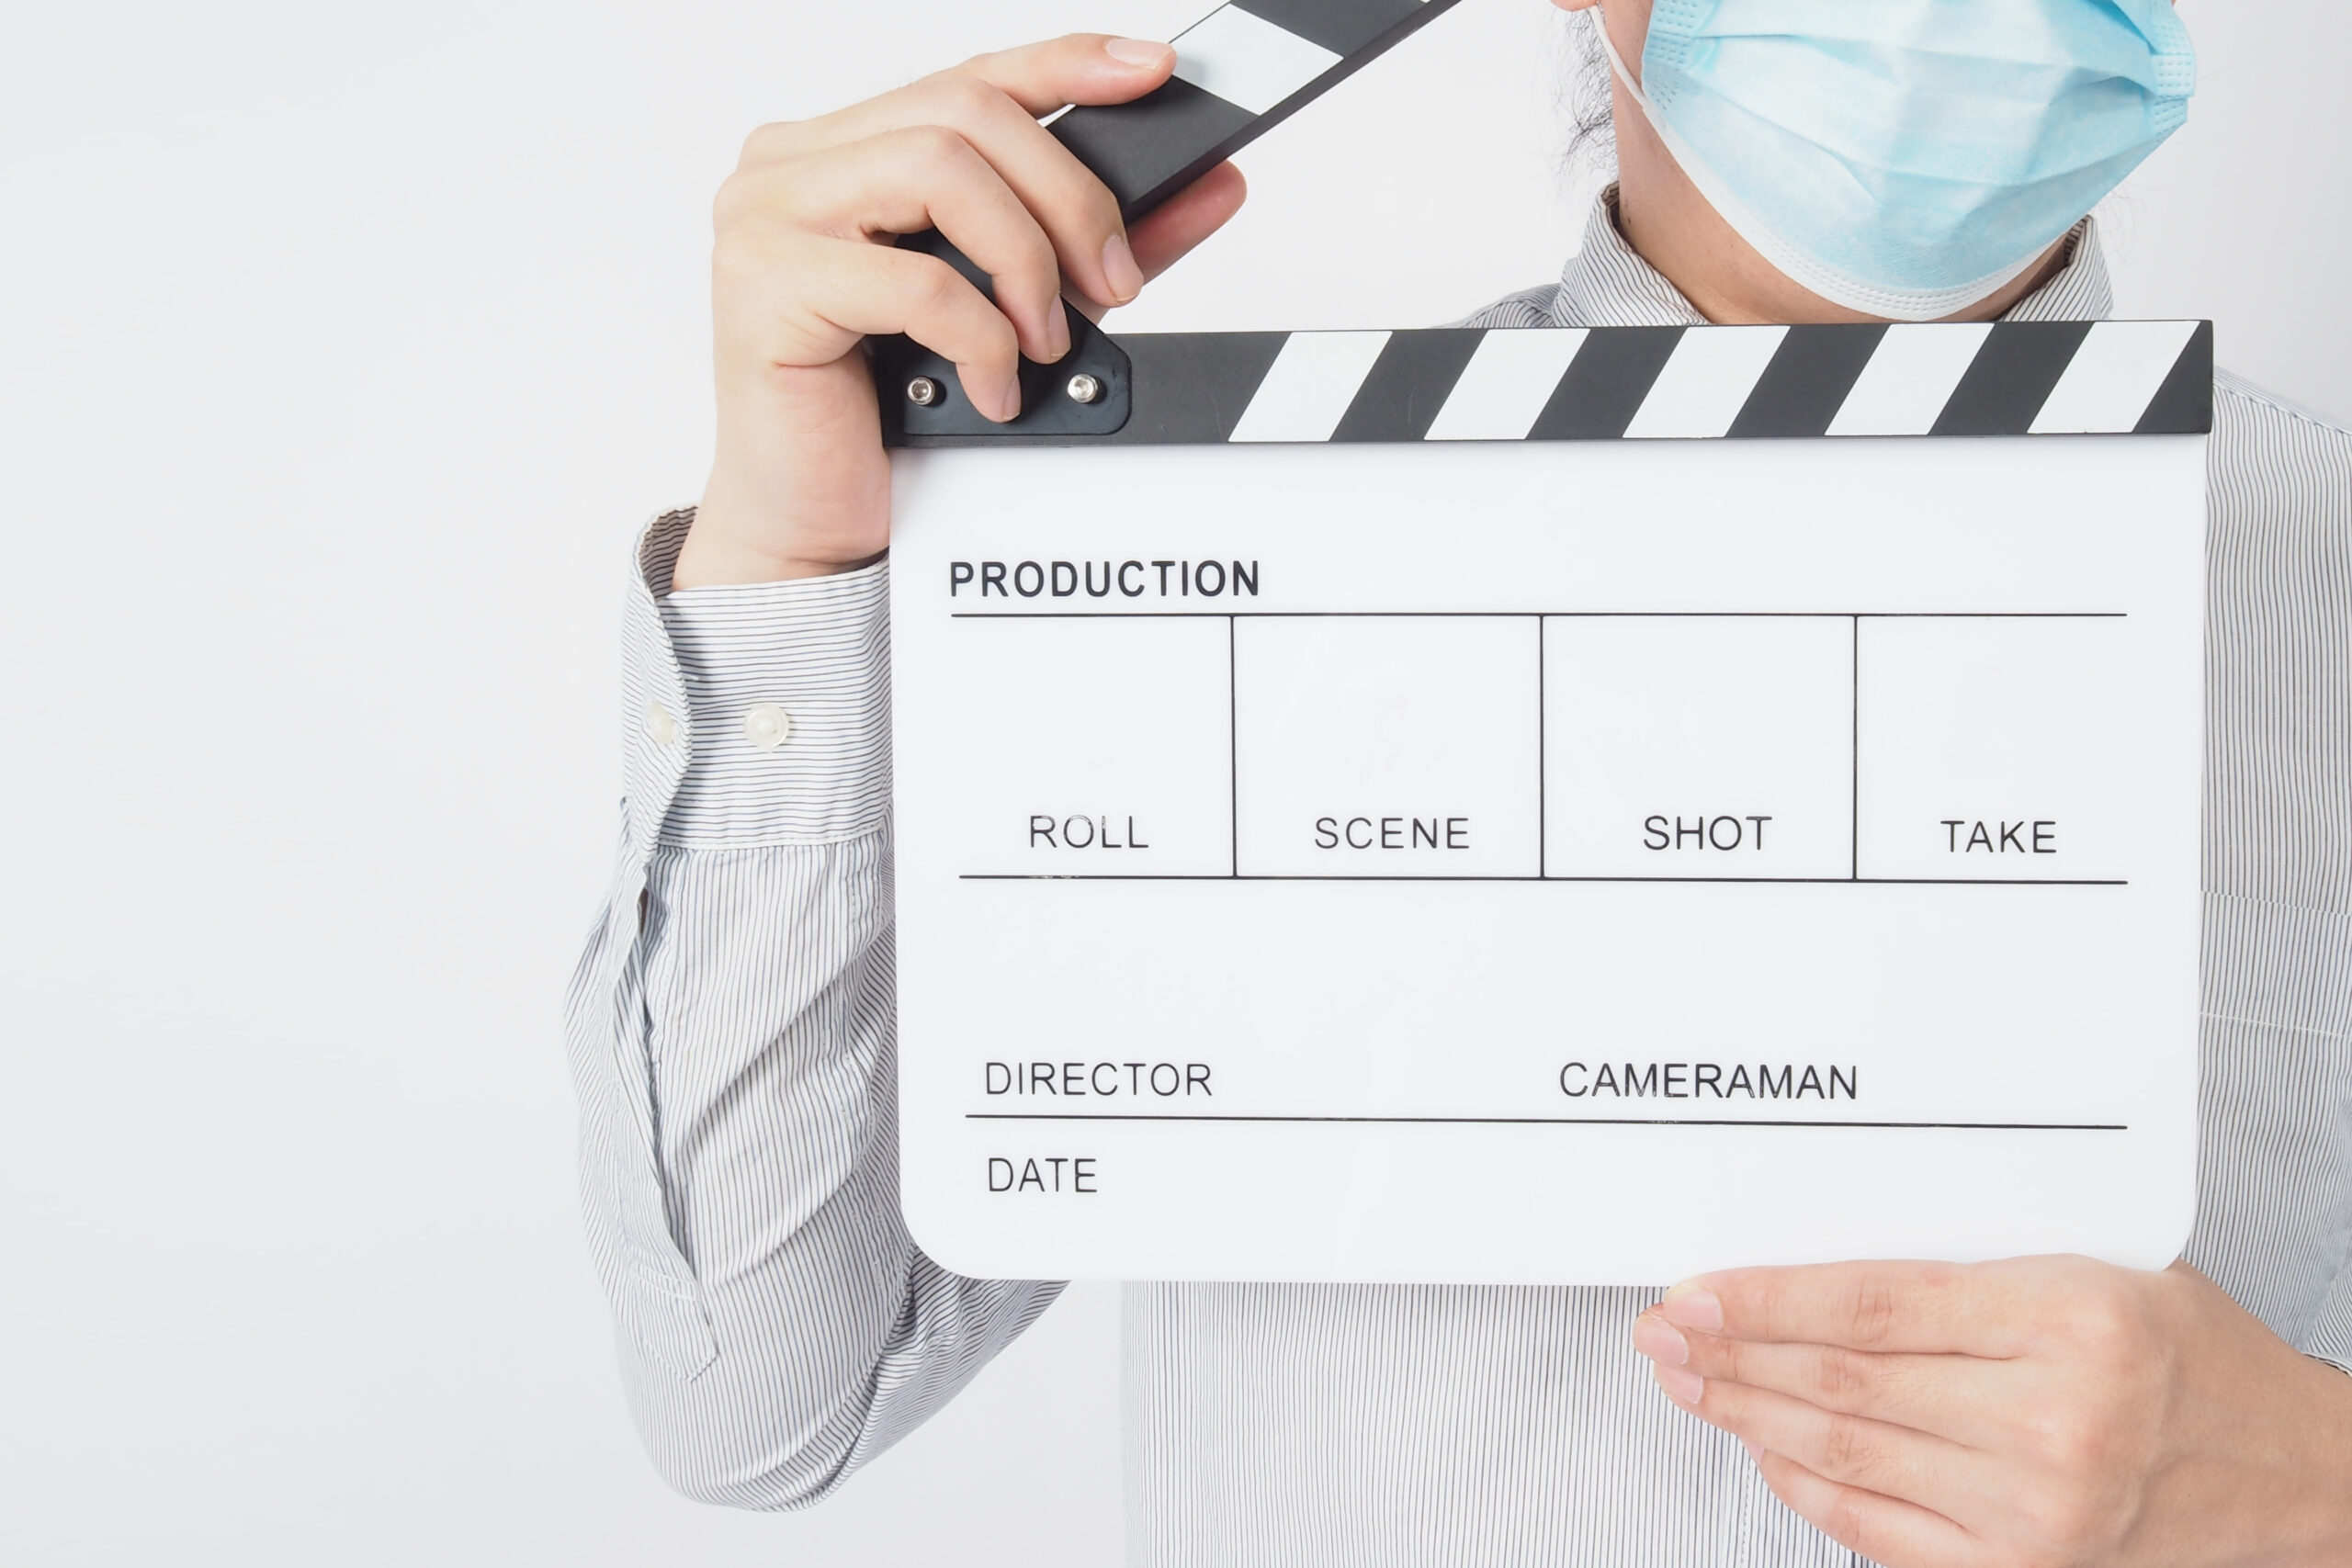 How to Grow Your Business Through Video Production During Covid-19